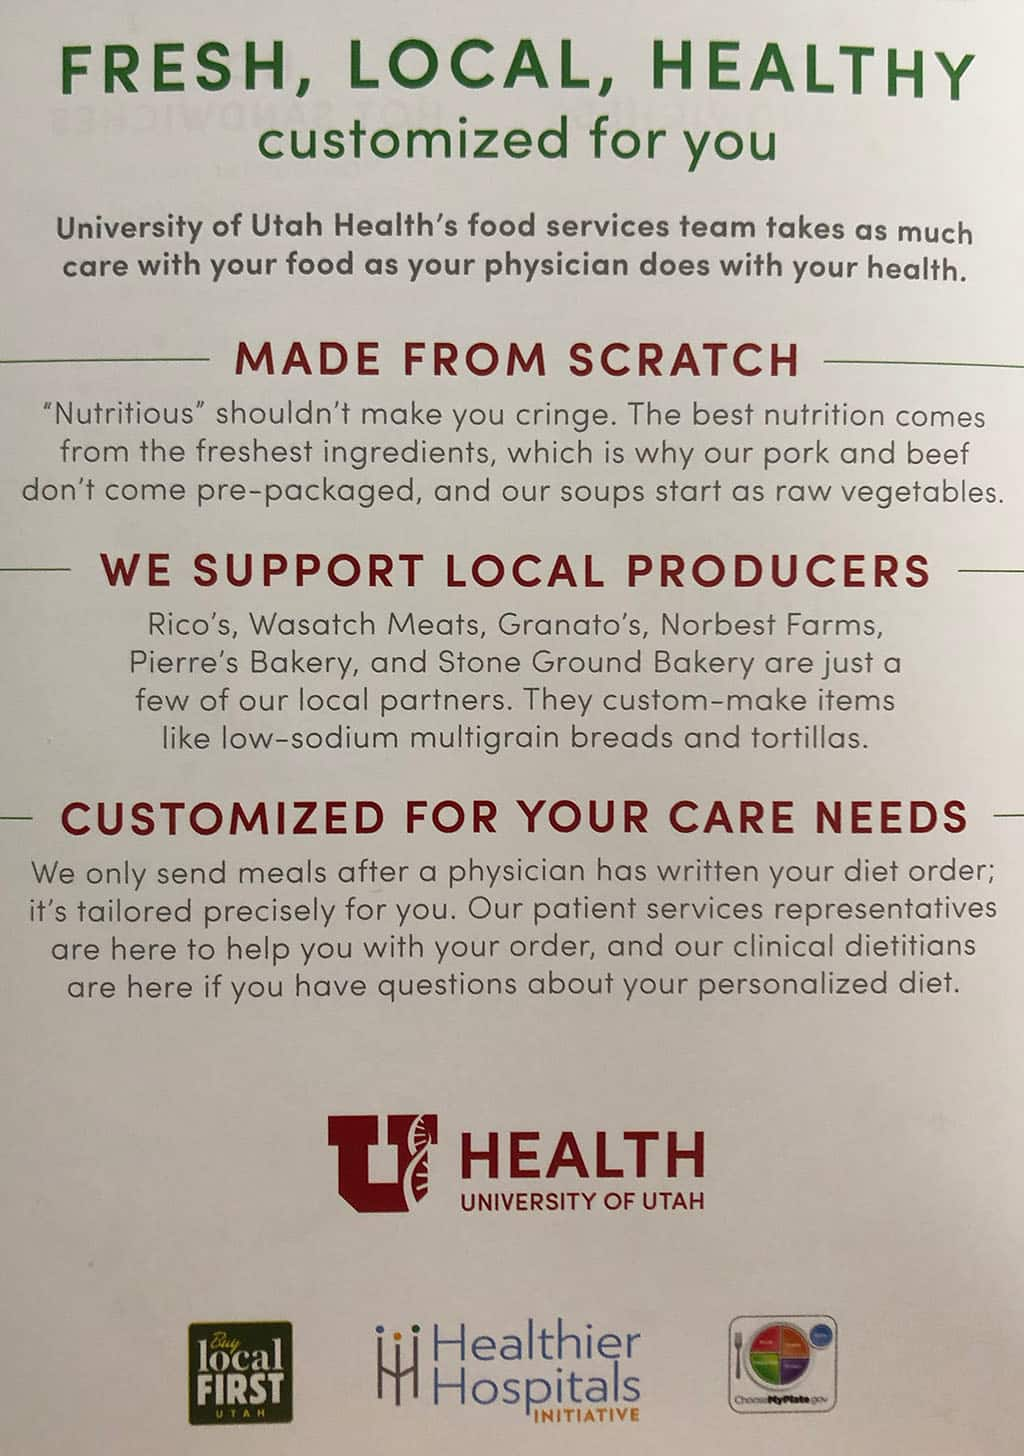 University Of Utah Hospital In Patient menu - details